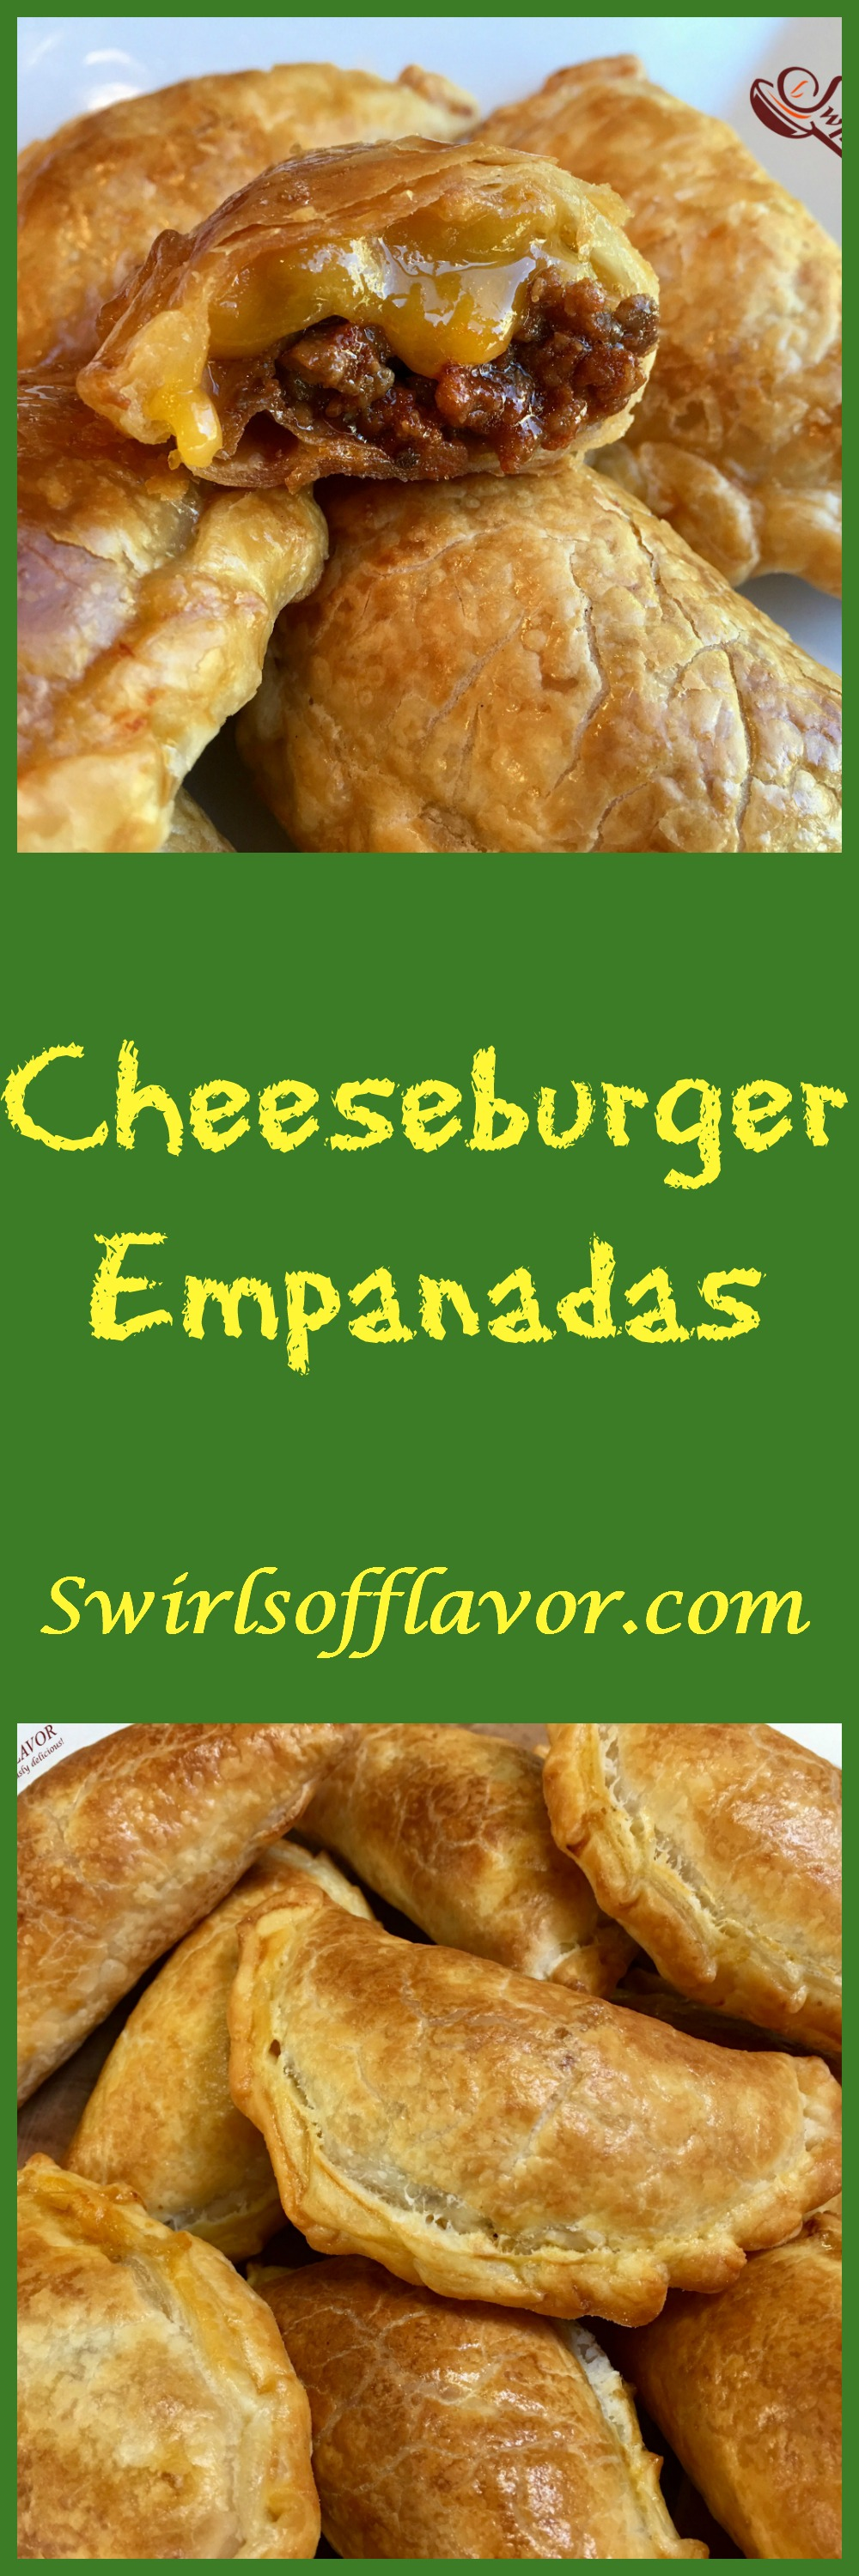 Cheeseburger Empanadas are bursting with a ground beef, ketchup and cheese filling, making them the perfect kid friendly snack!  #cheeseburger #empanadas #groundbeef #cheese #kidfriendly #snack #appetizer #CincodeMayo #easyrecipe #ovenbaked  #swirlsofflavor